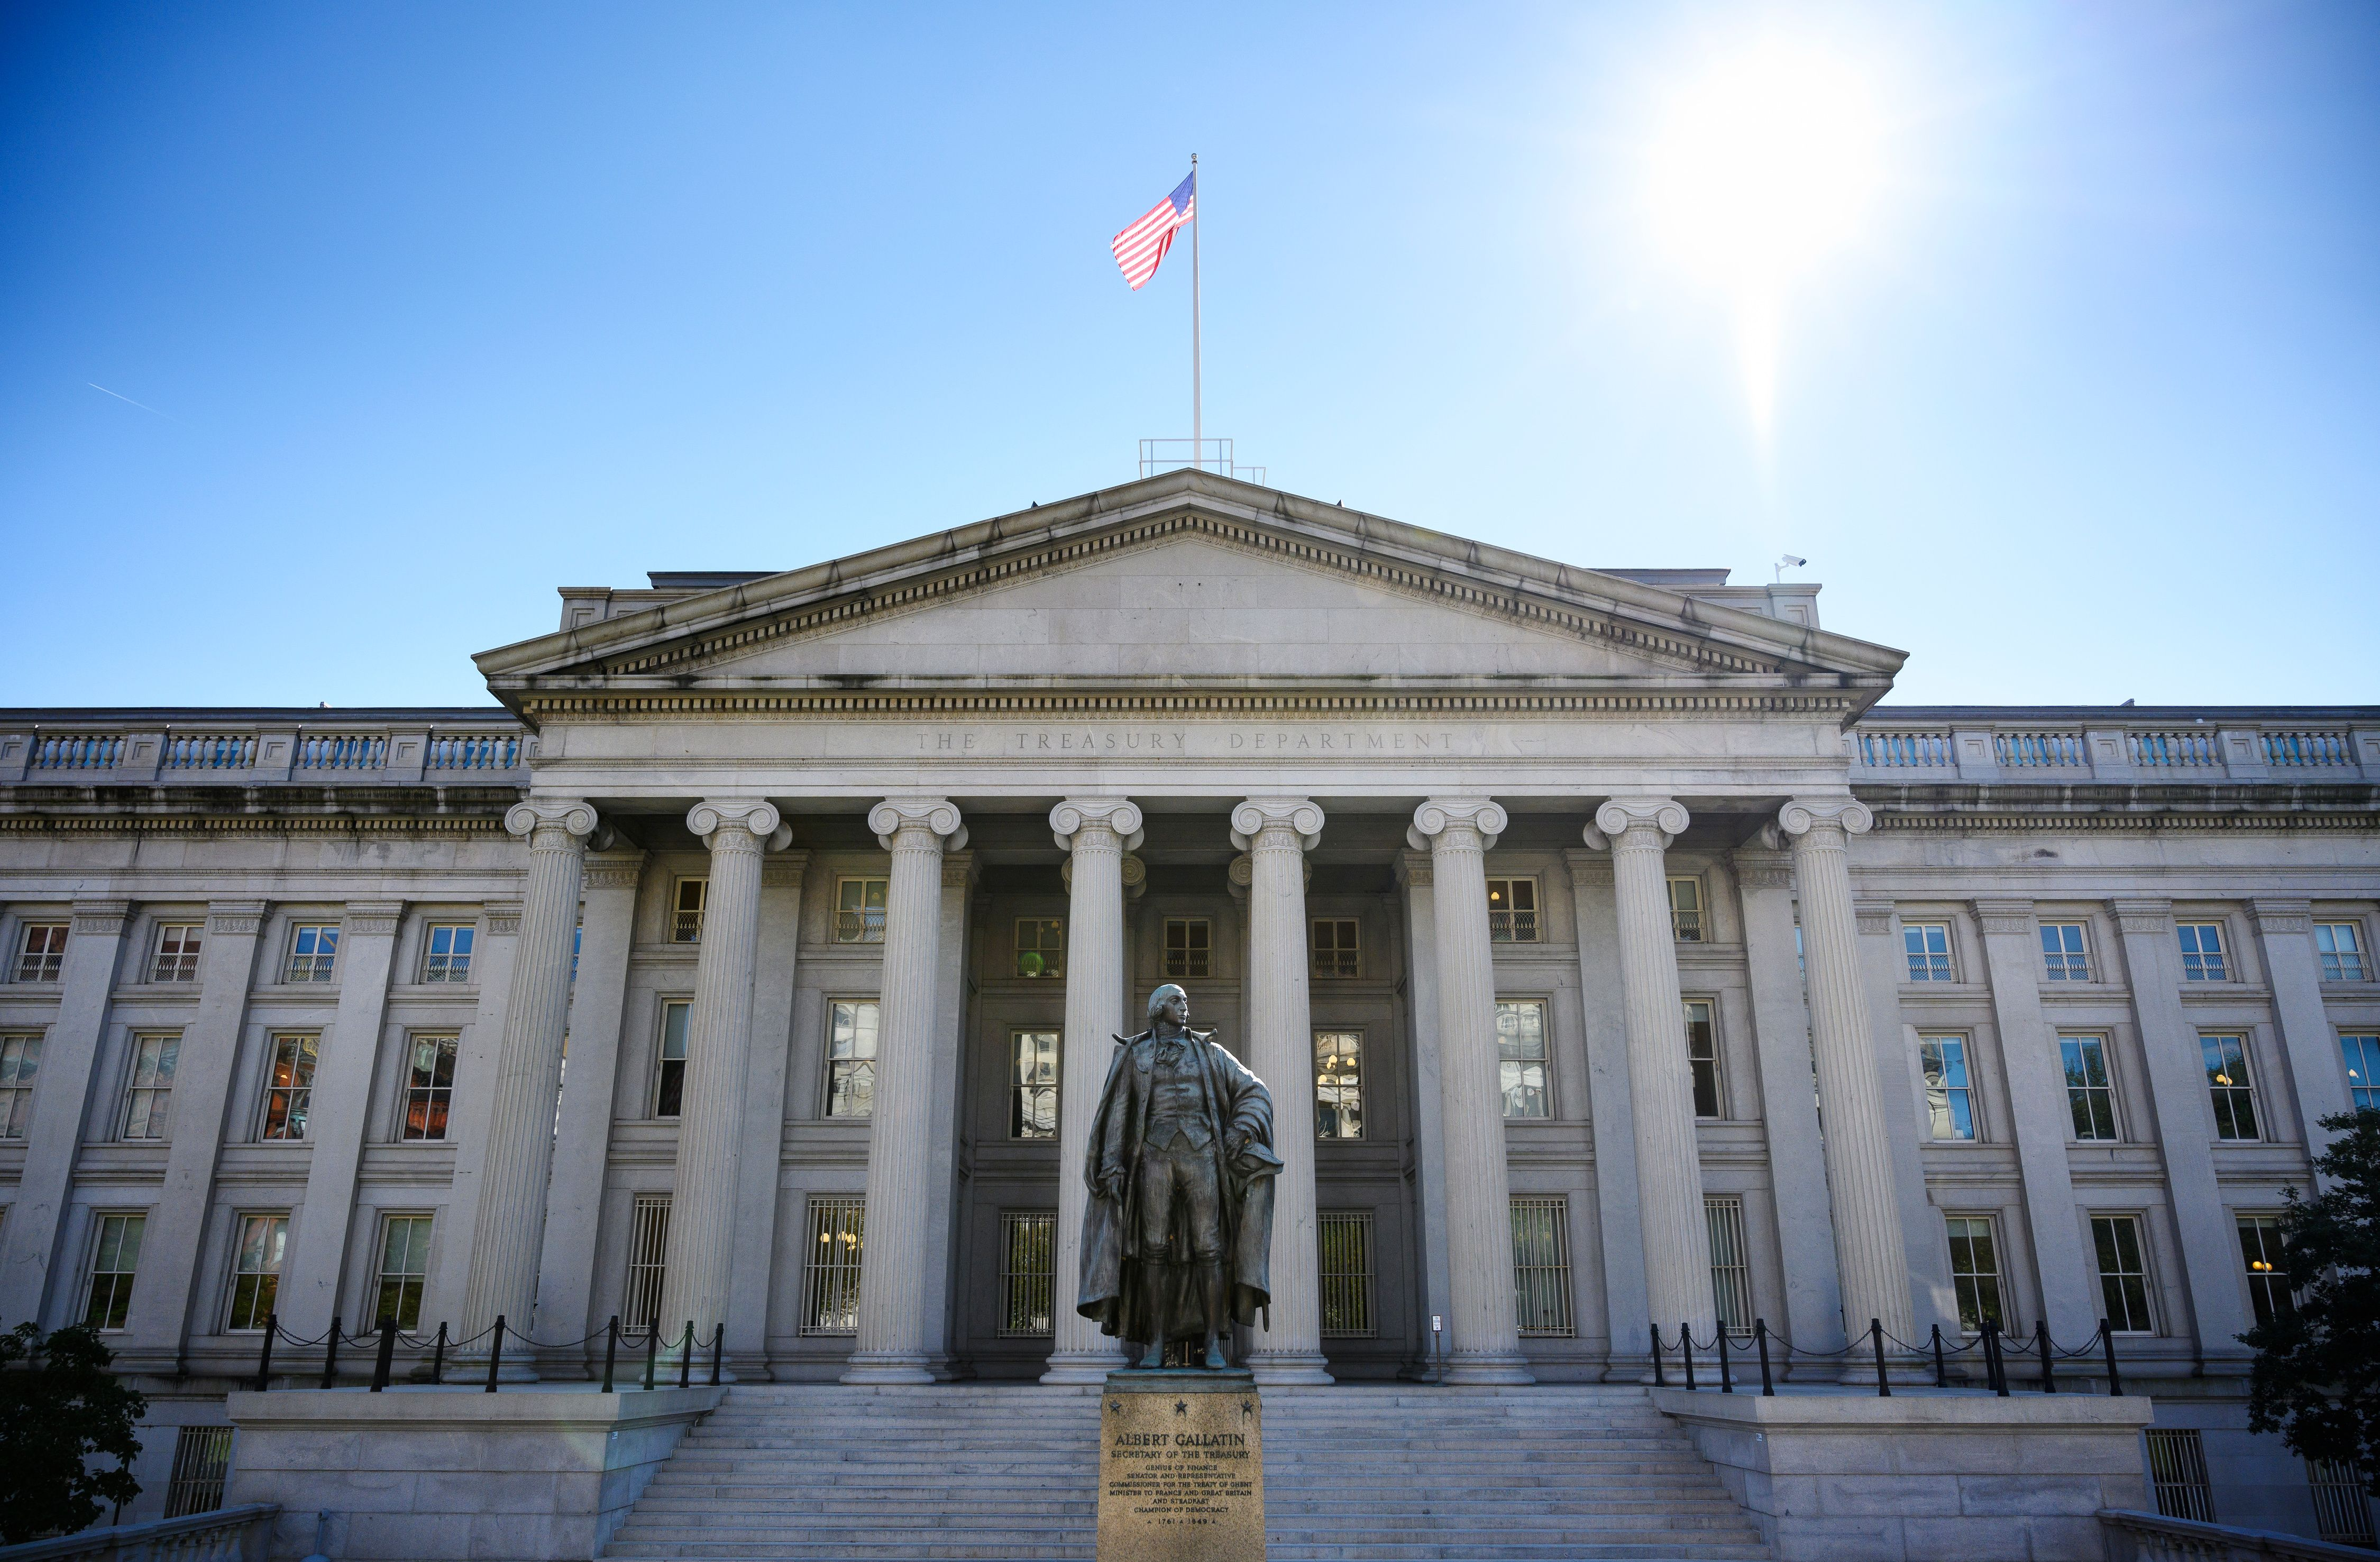 An October 18, 2018 photo shows the US Treasury Department building in Washington, DC. (MANDEL NGAN/AFP/Getty Images)